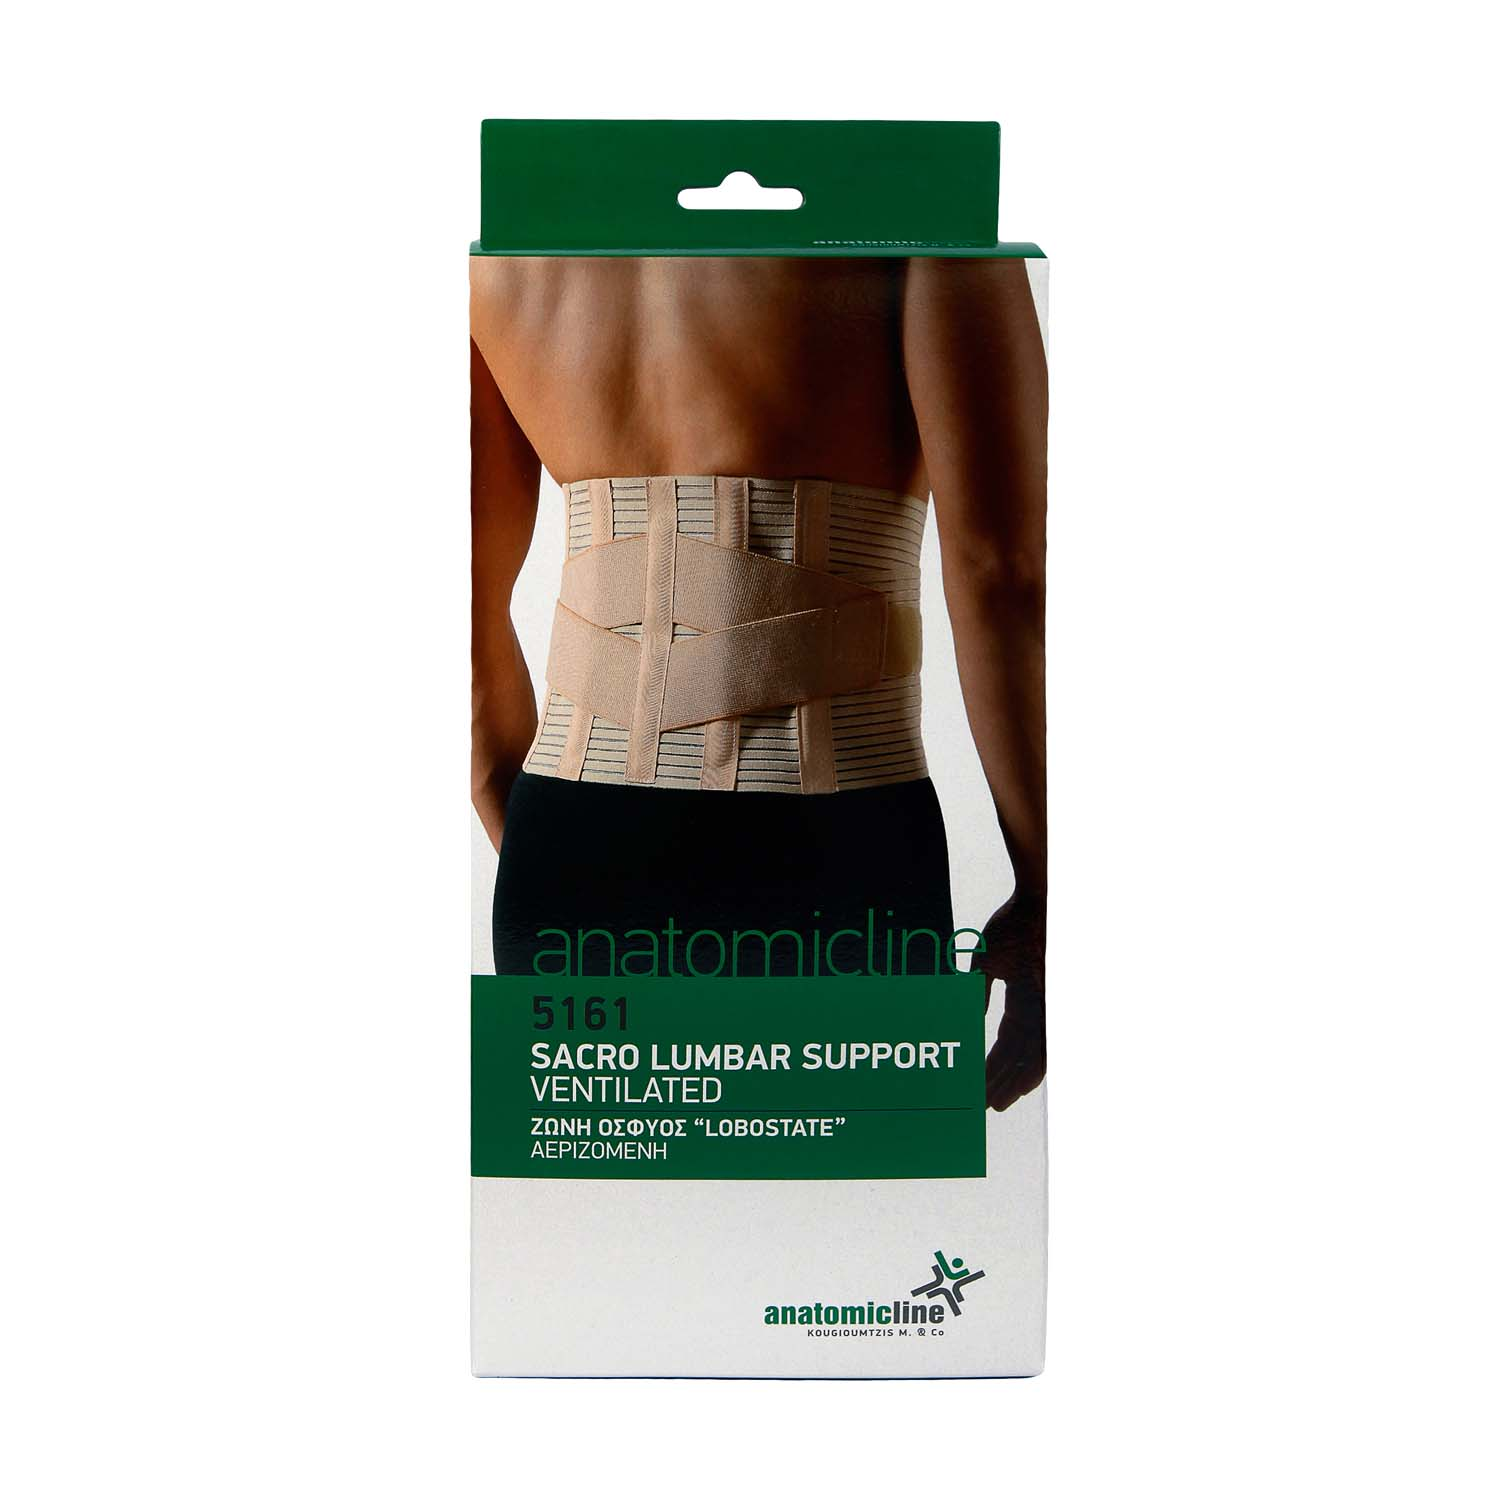 Sacro Lumbar Support - ventilated